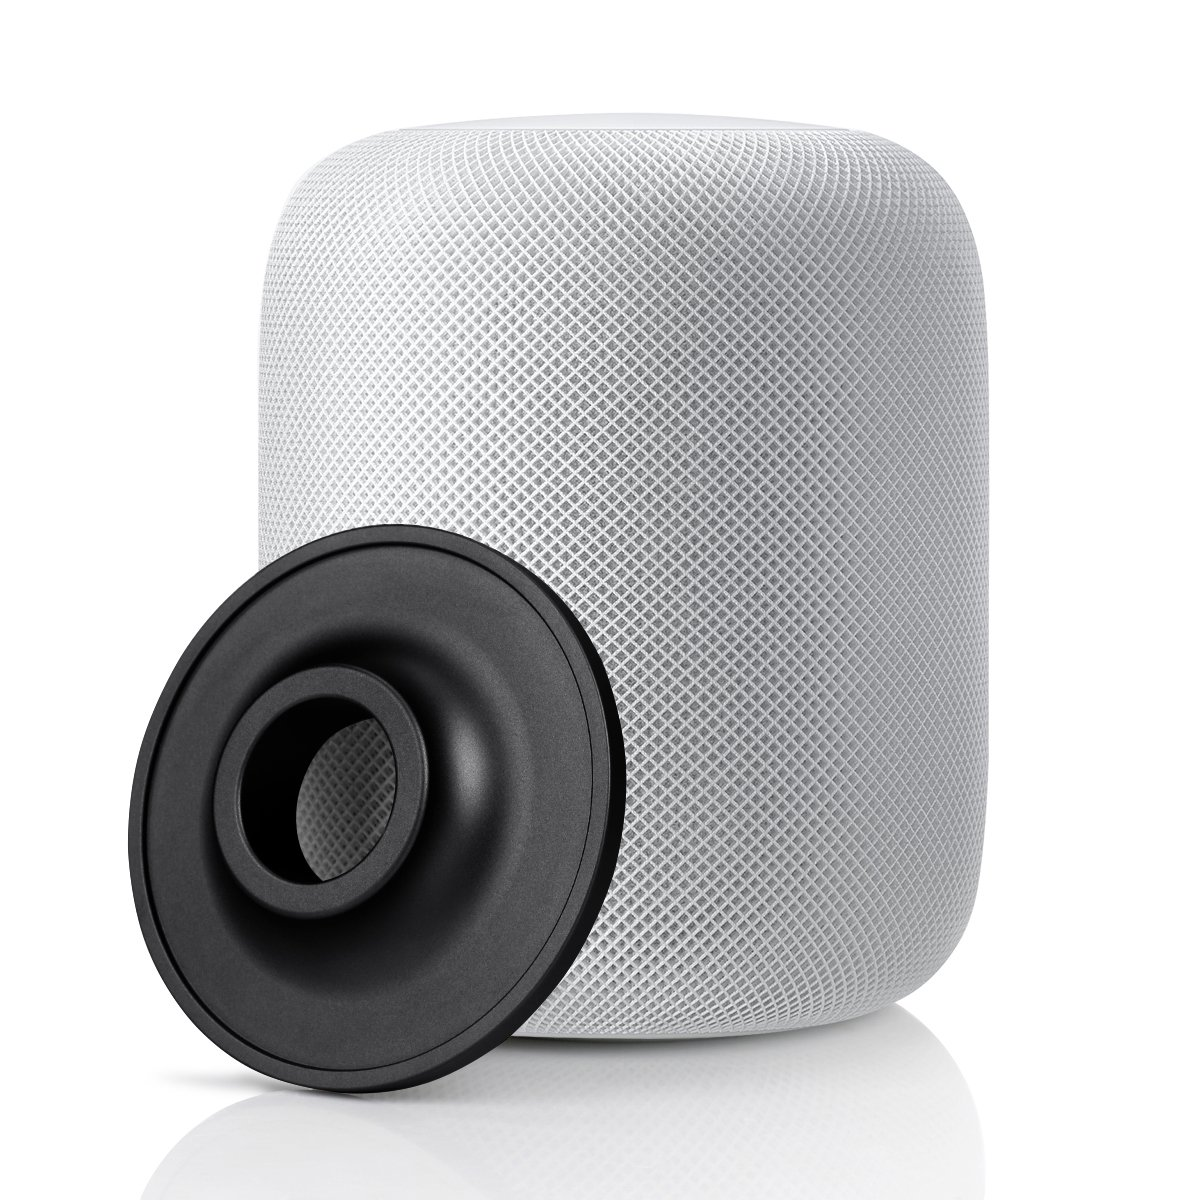 Circle Compatible Apple HomePod Stand, Stainless Steel Stand for Apple HomePod Speaker (Black)